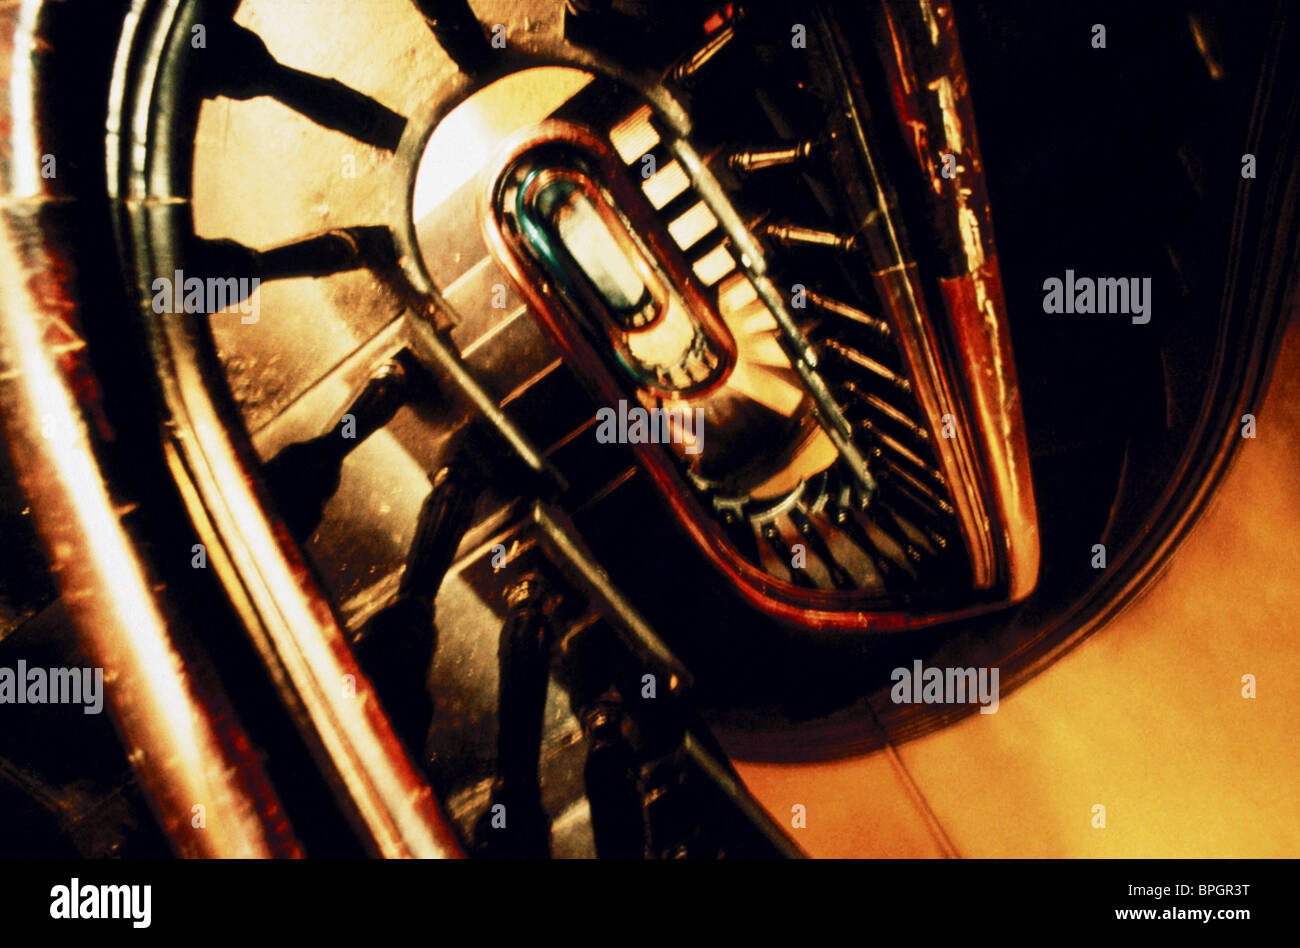 STAIRCASE THE 4TH FLOOR (1999) - Stock Image